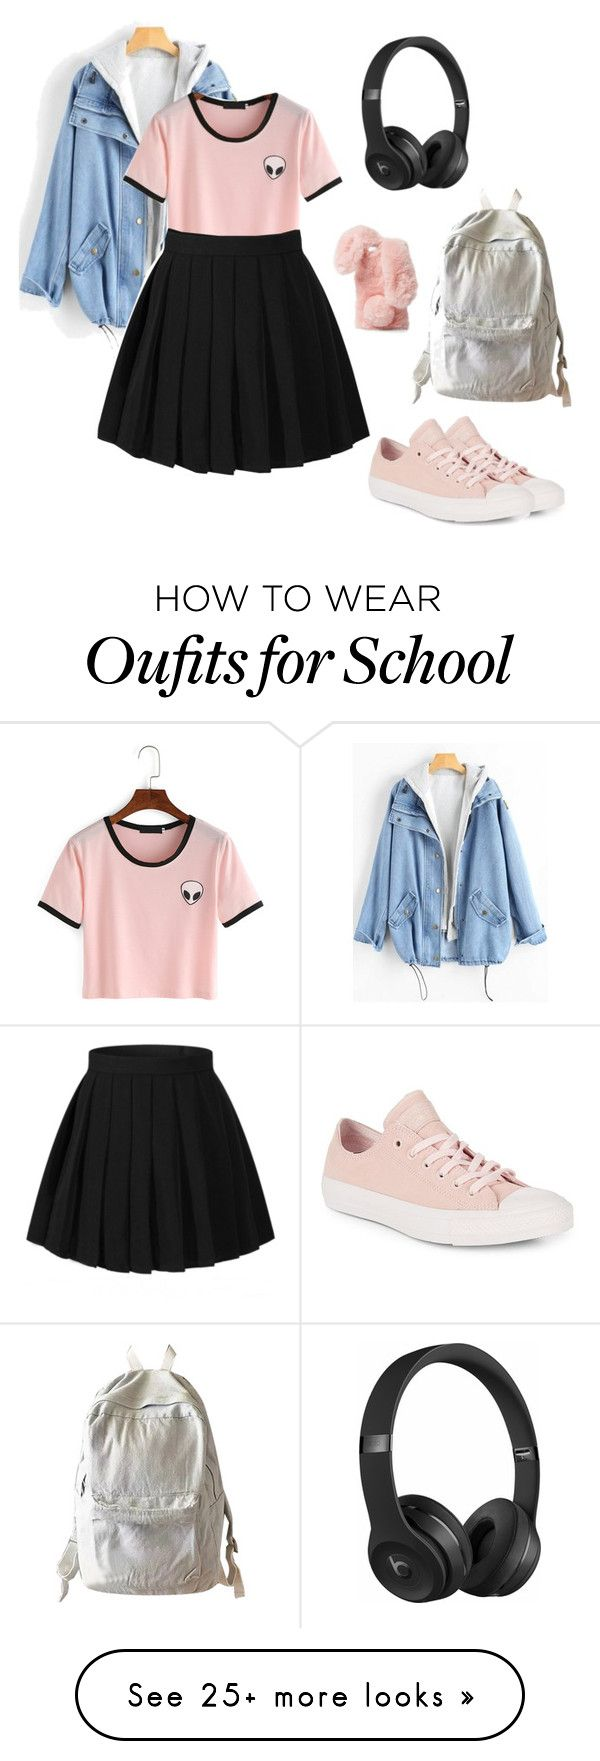 """Nuteral Alien"" by clevver on Polyvore featuring Converse, WithChic, Ashlyn'd and Beats by Dr. Dre"